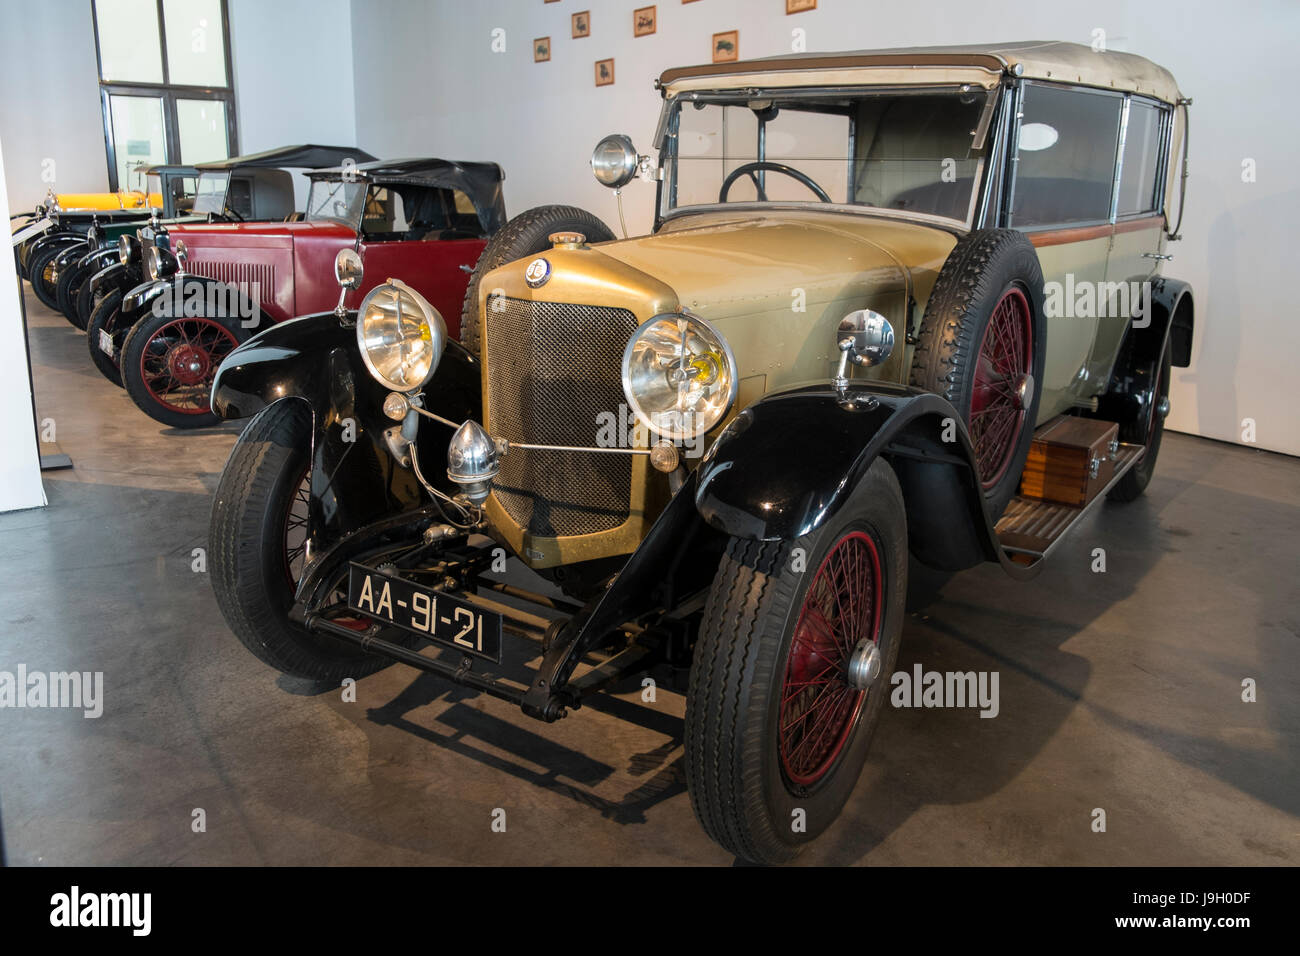 1928 Ballot 'Convertible body'. Automobile museum of Málaga, Andalusia, Spain. - Stock Image